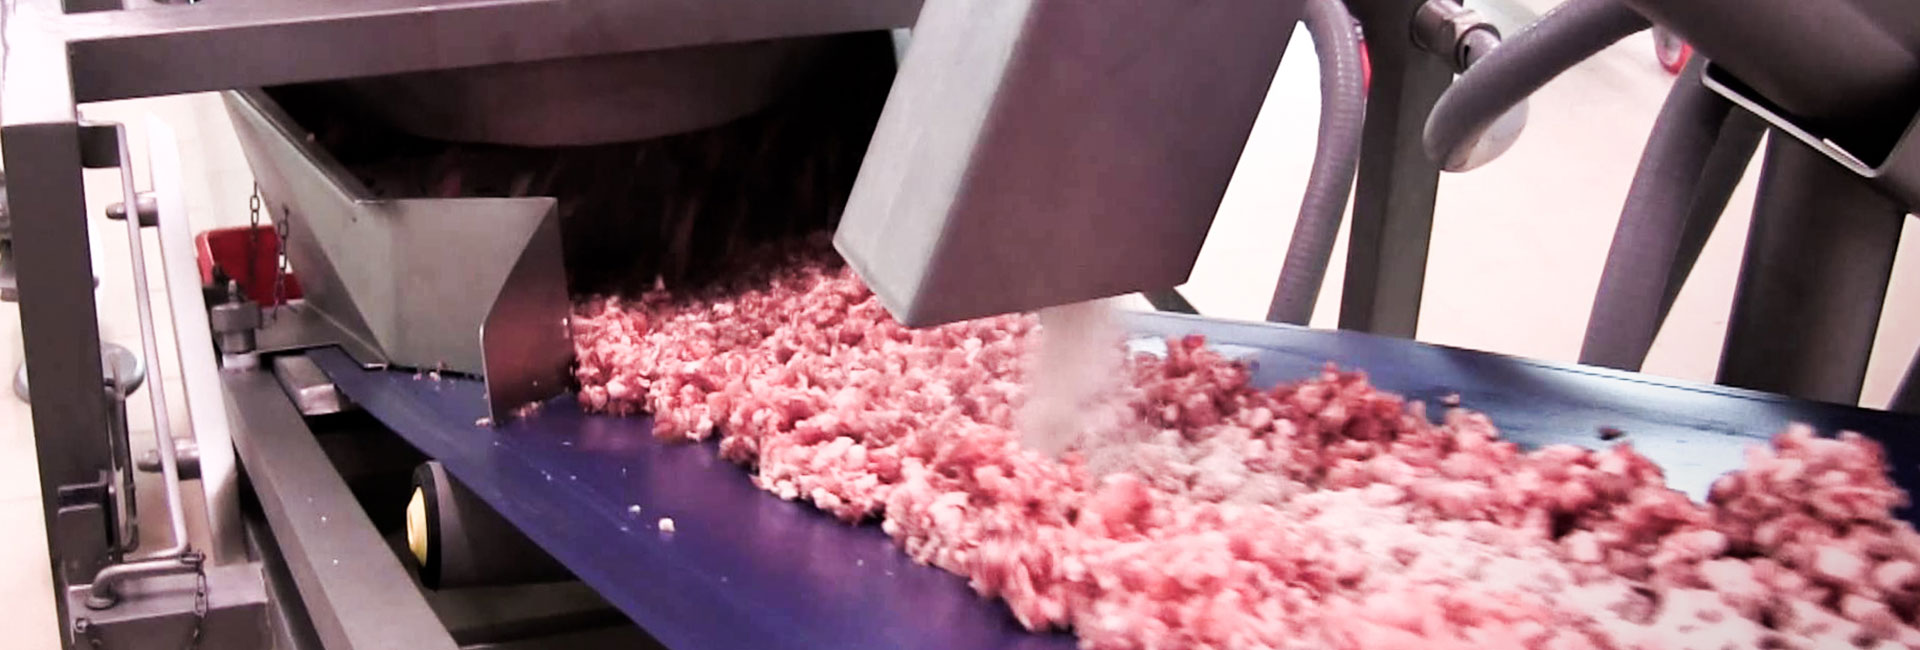 MANUFACTURERS OF MEAT PROCESSING MACHINES